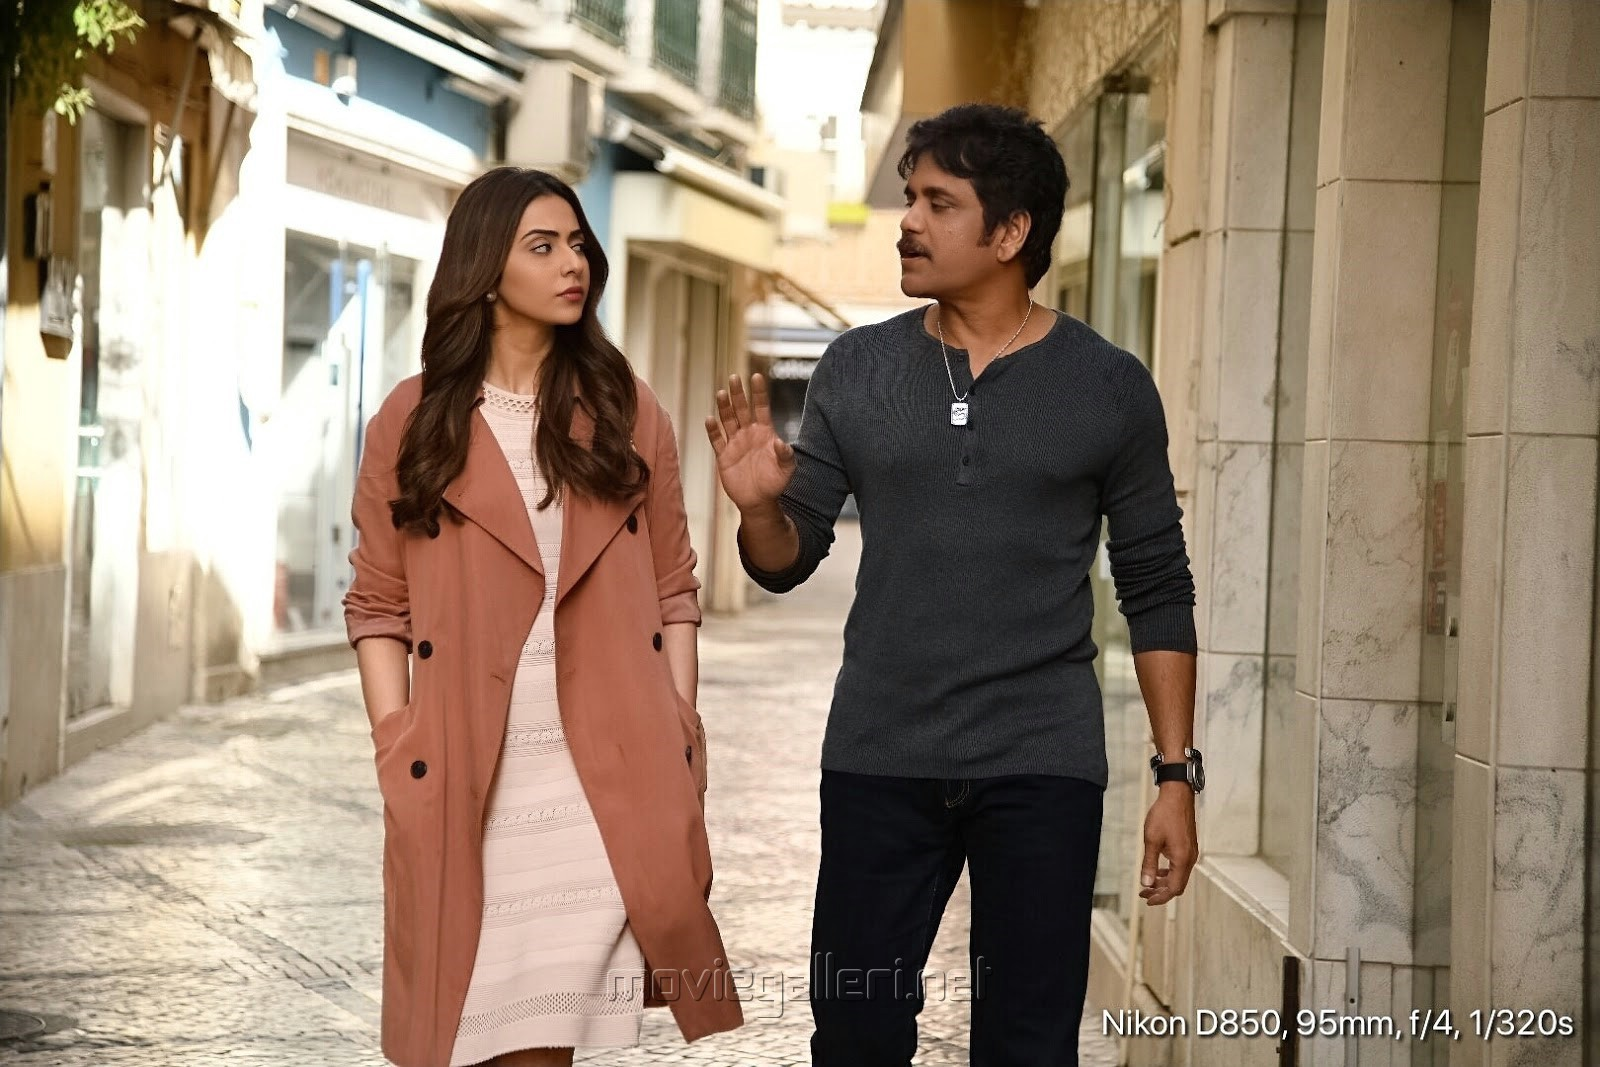 Rakul Preet Singh, Nagarjuna in Manmadhudu 2 Movie Stills HD